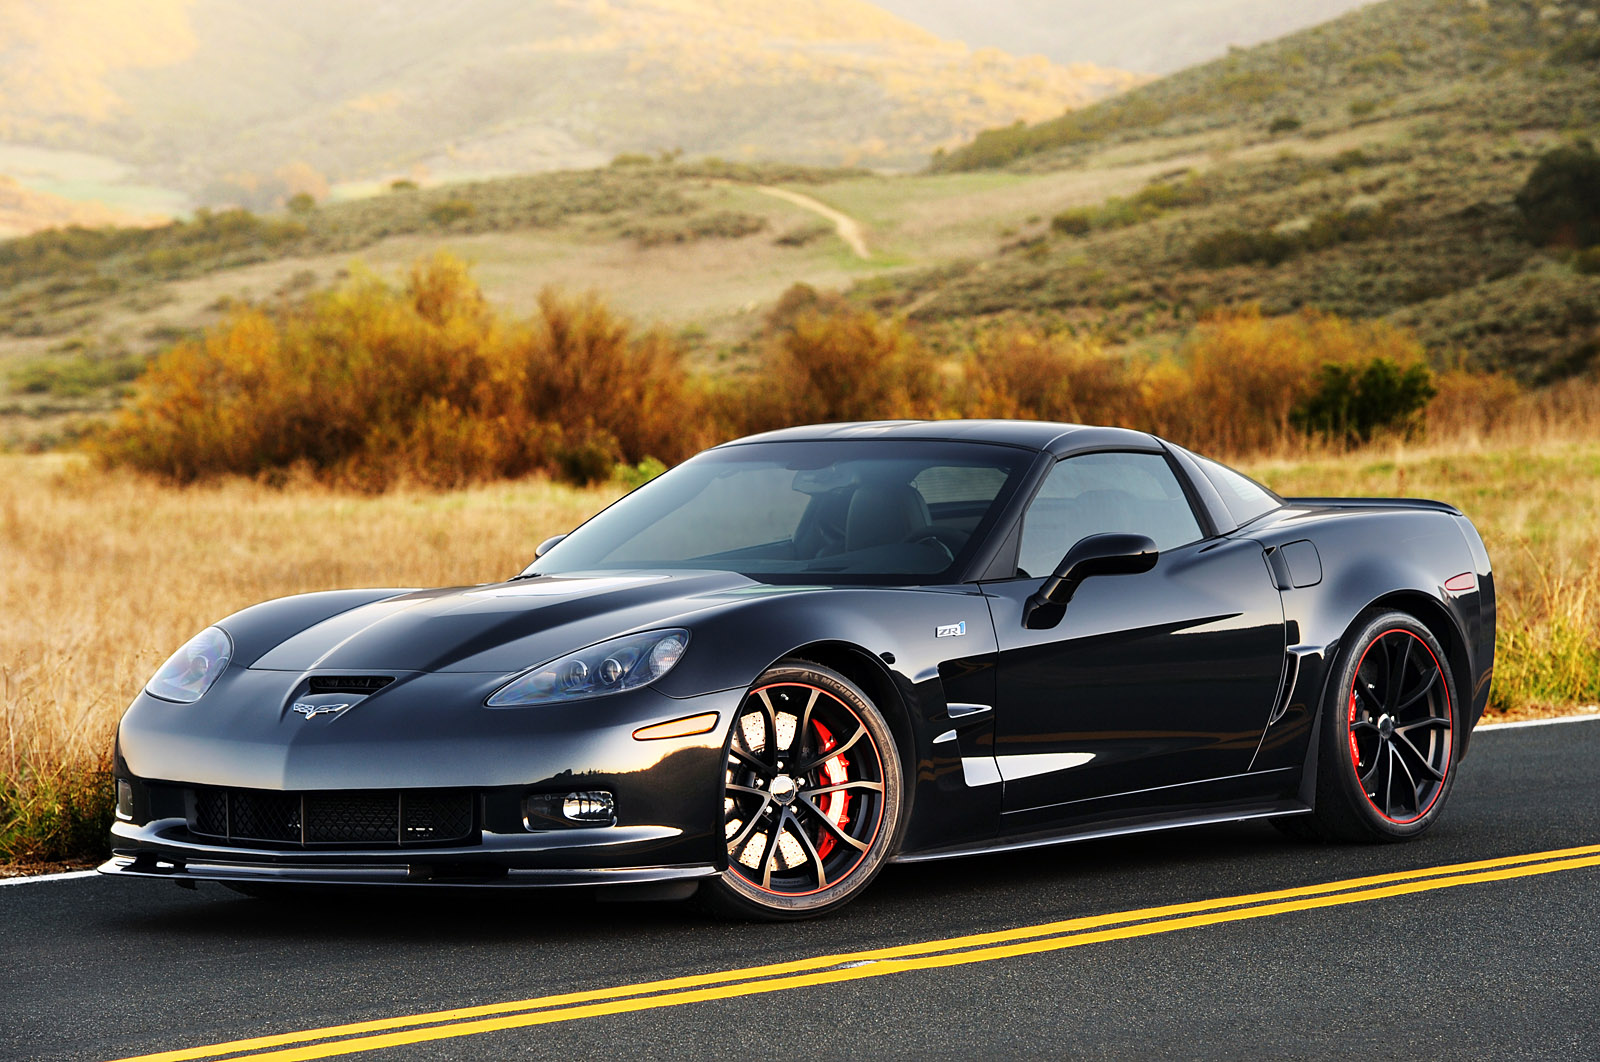 2012 chevrolet corvette zr1 review photo gallery autoblog. Black Bedroom Furniture Sets. Home Design Ideas